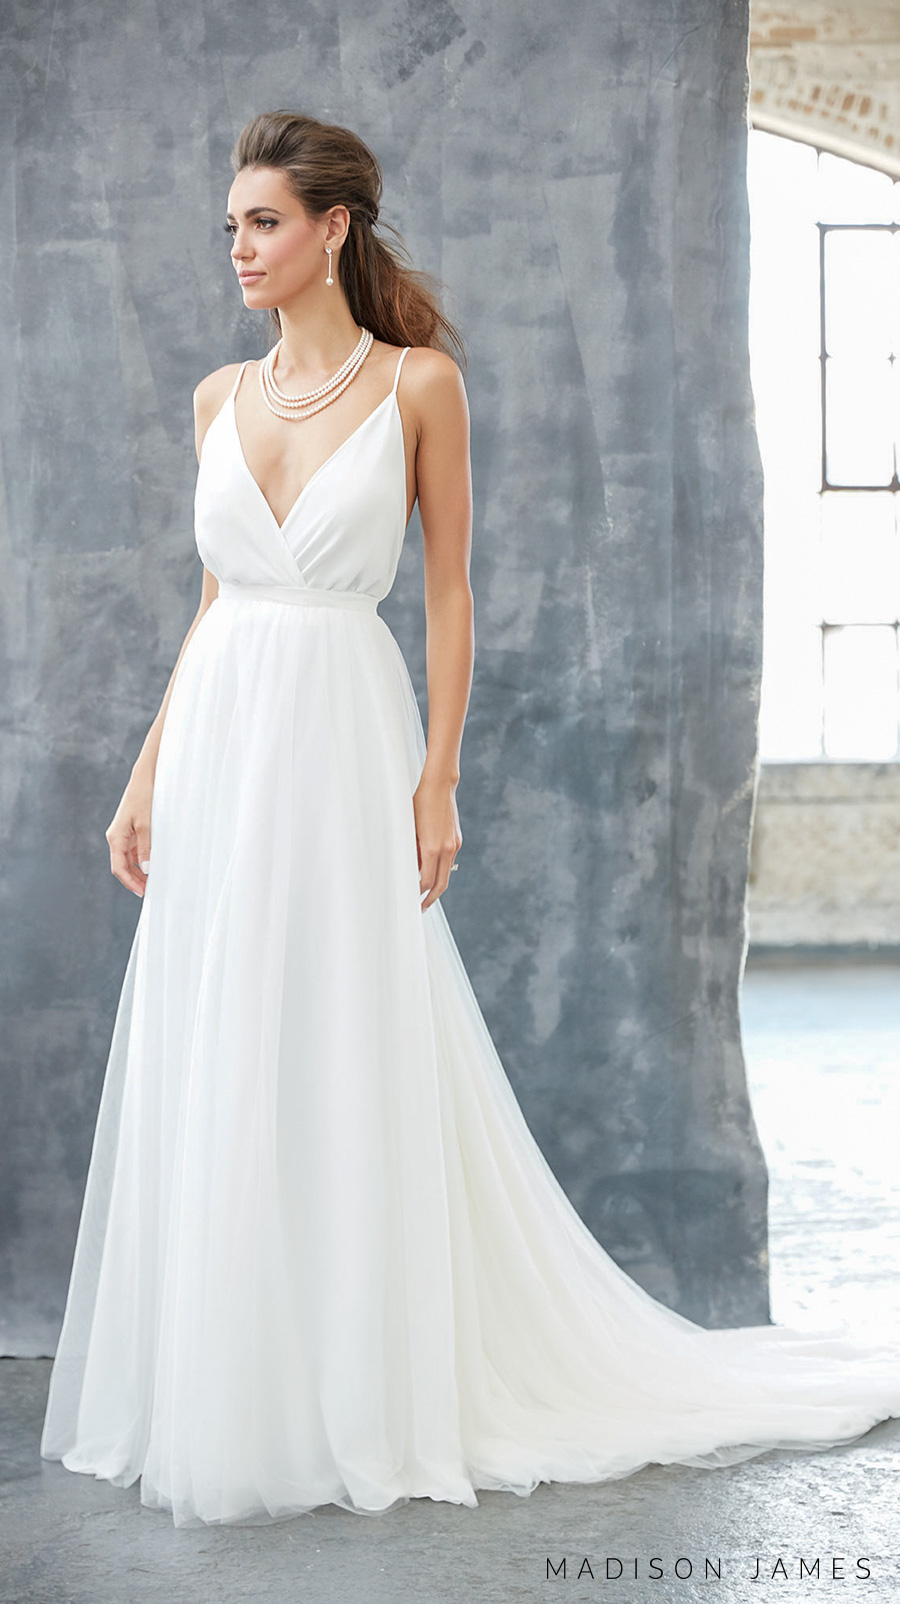 madison james spring 2017 bridal spagetti strap v neck simple clean surplice bodice elegant romantic elegant a line wedding dress open low v back chapel train (mj313) mv